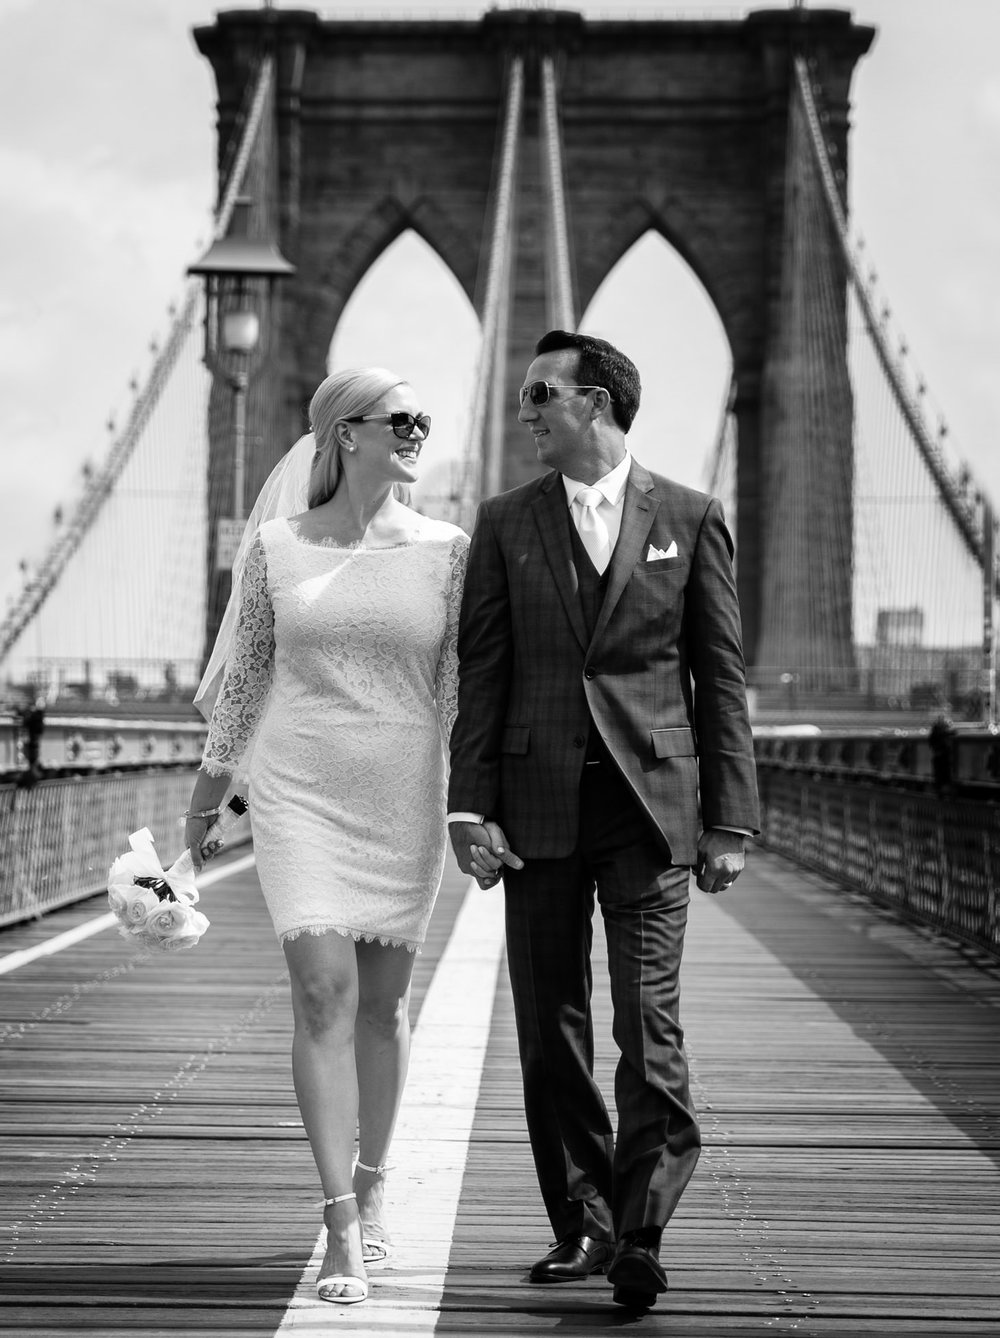 nyc-wedding-photographer-city-hall-elopement-smitten-chickens-city-hall-wedding010.jpg